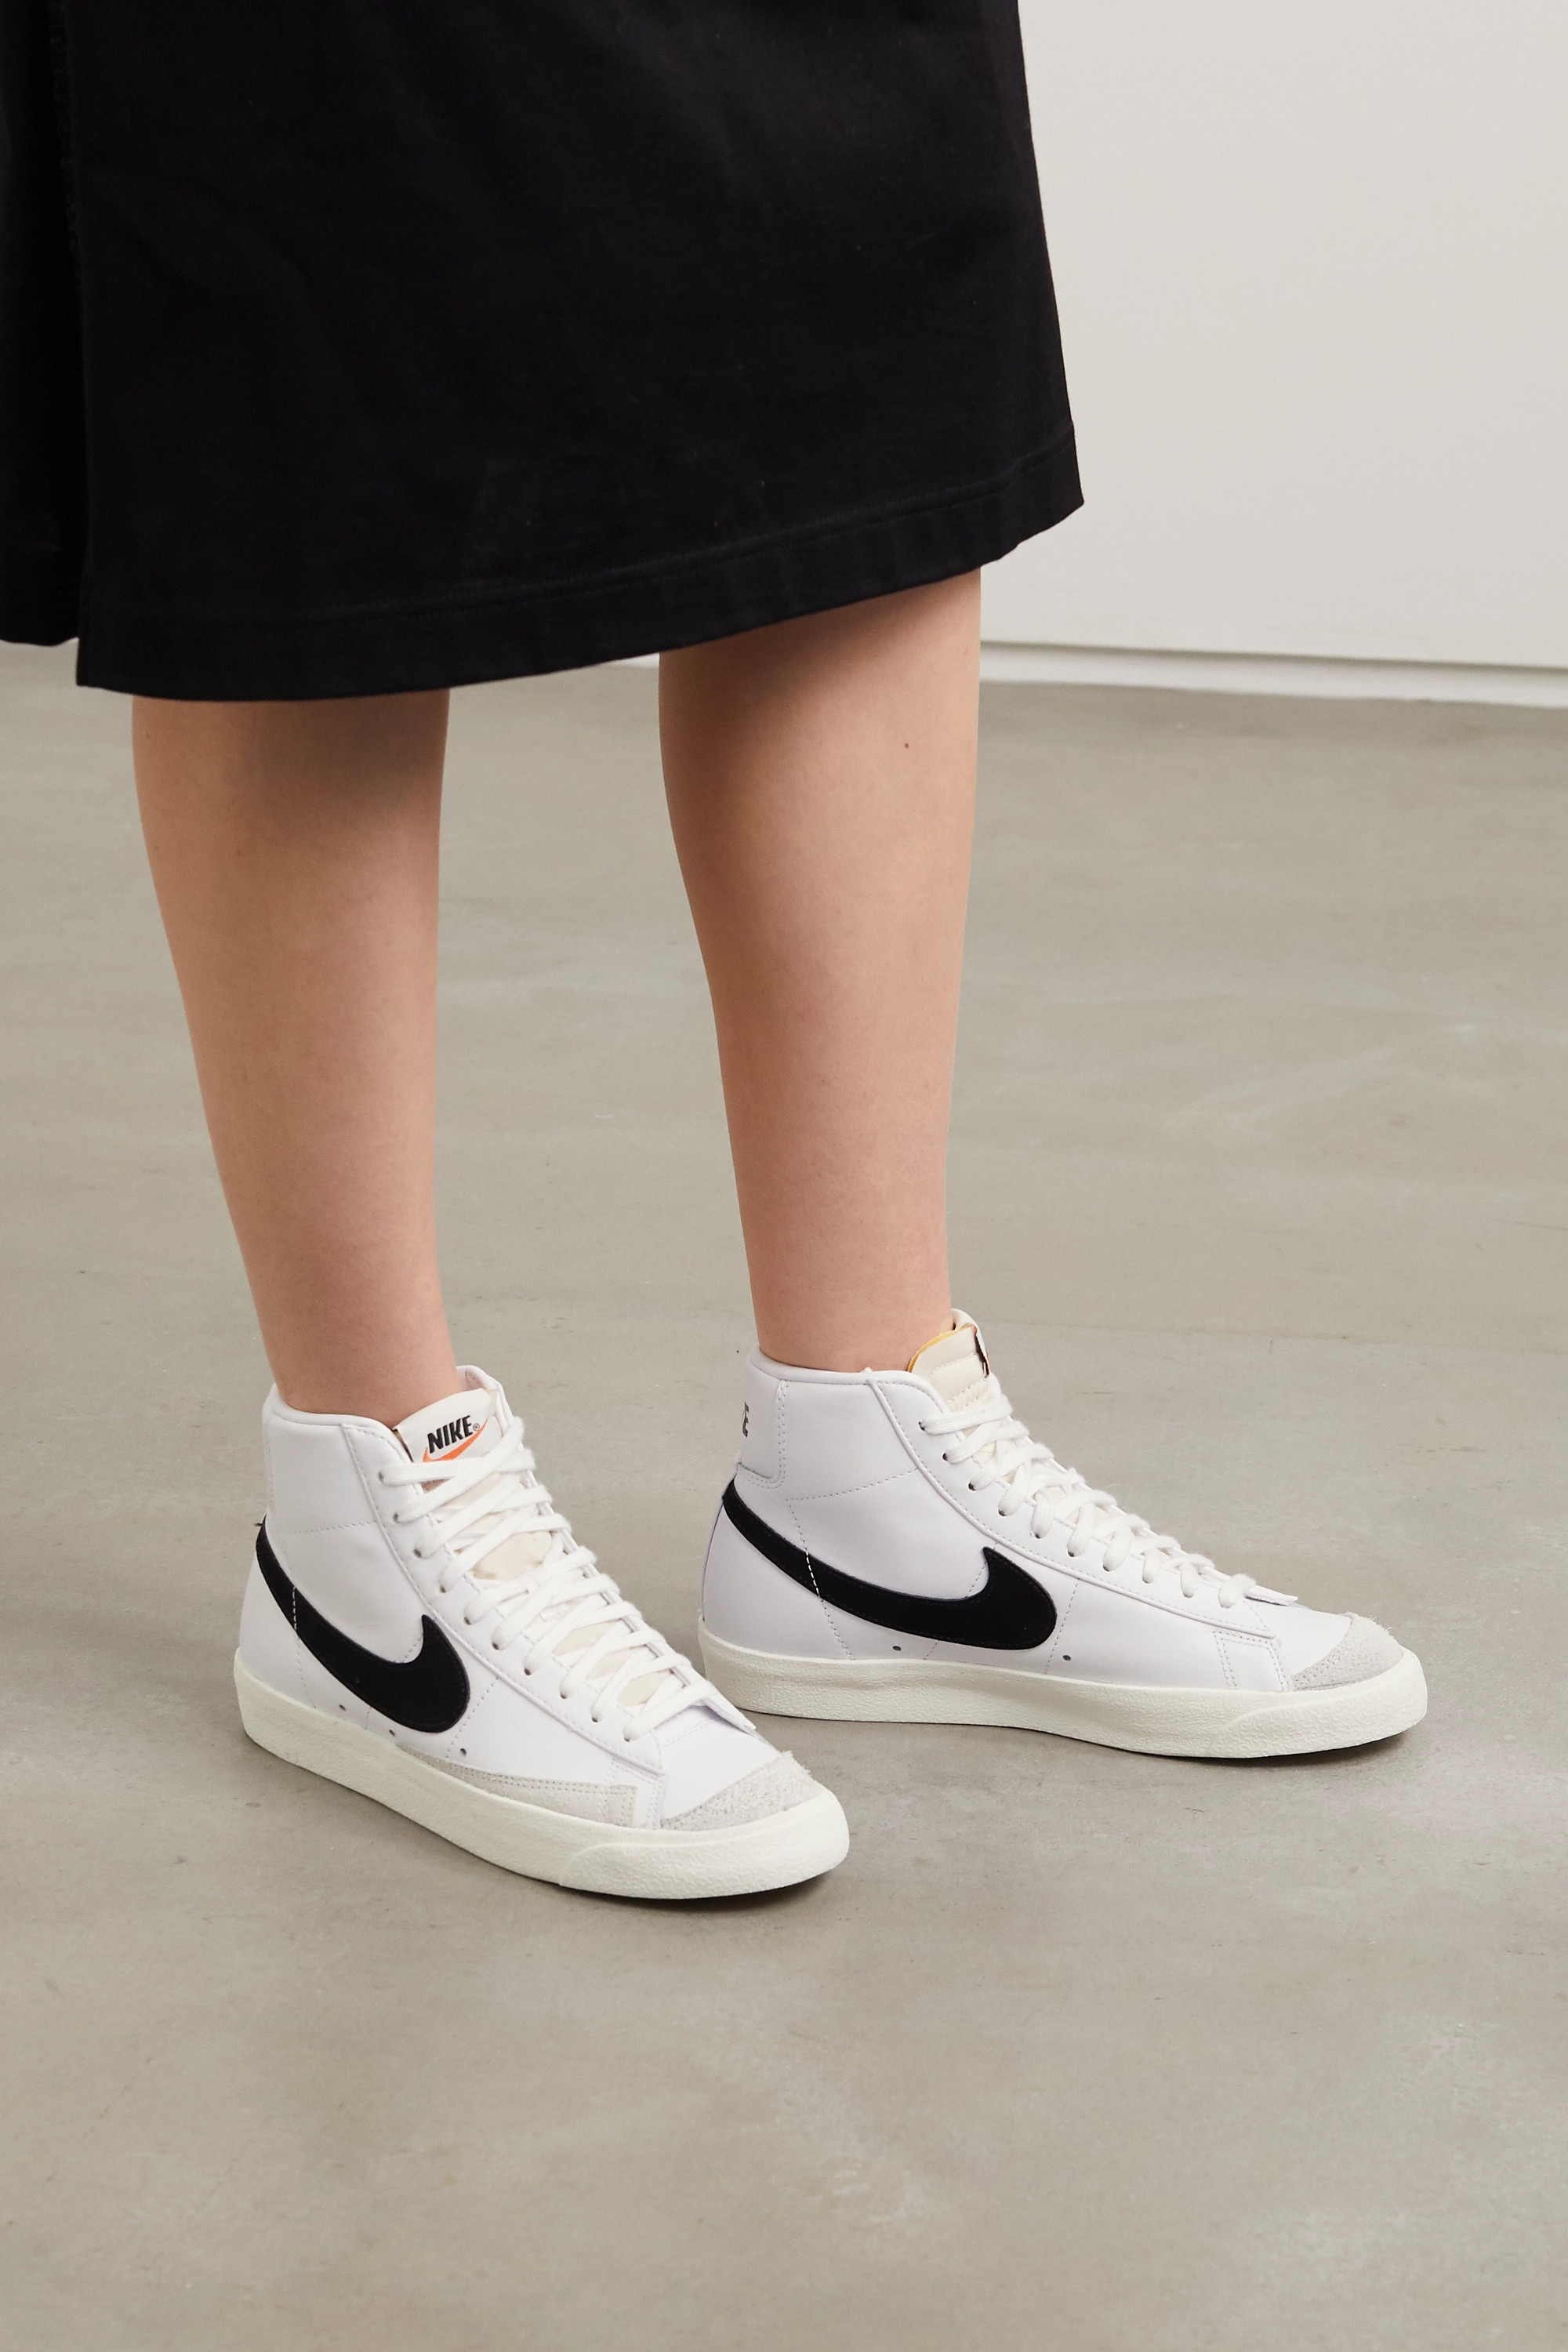 máquina Inconsistente Perca  White Blazer Mid suede-trimmed leather high-top sneakers | Nike |  NET-A-PORTER